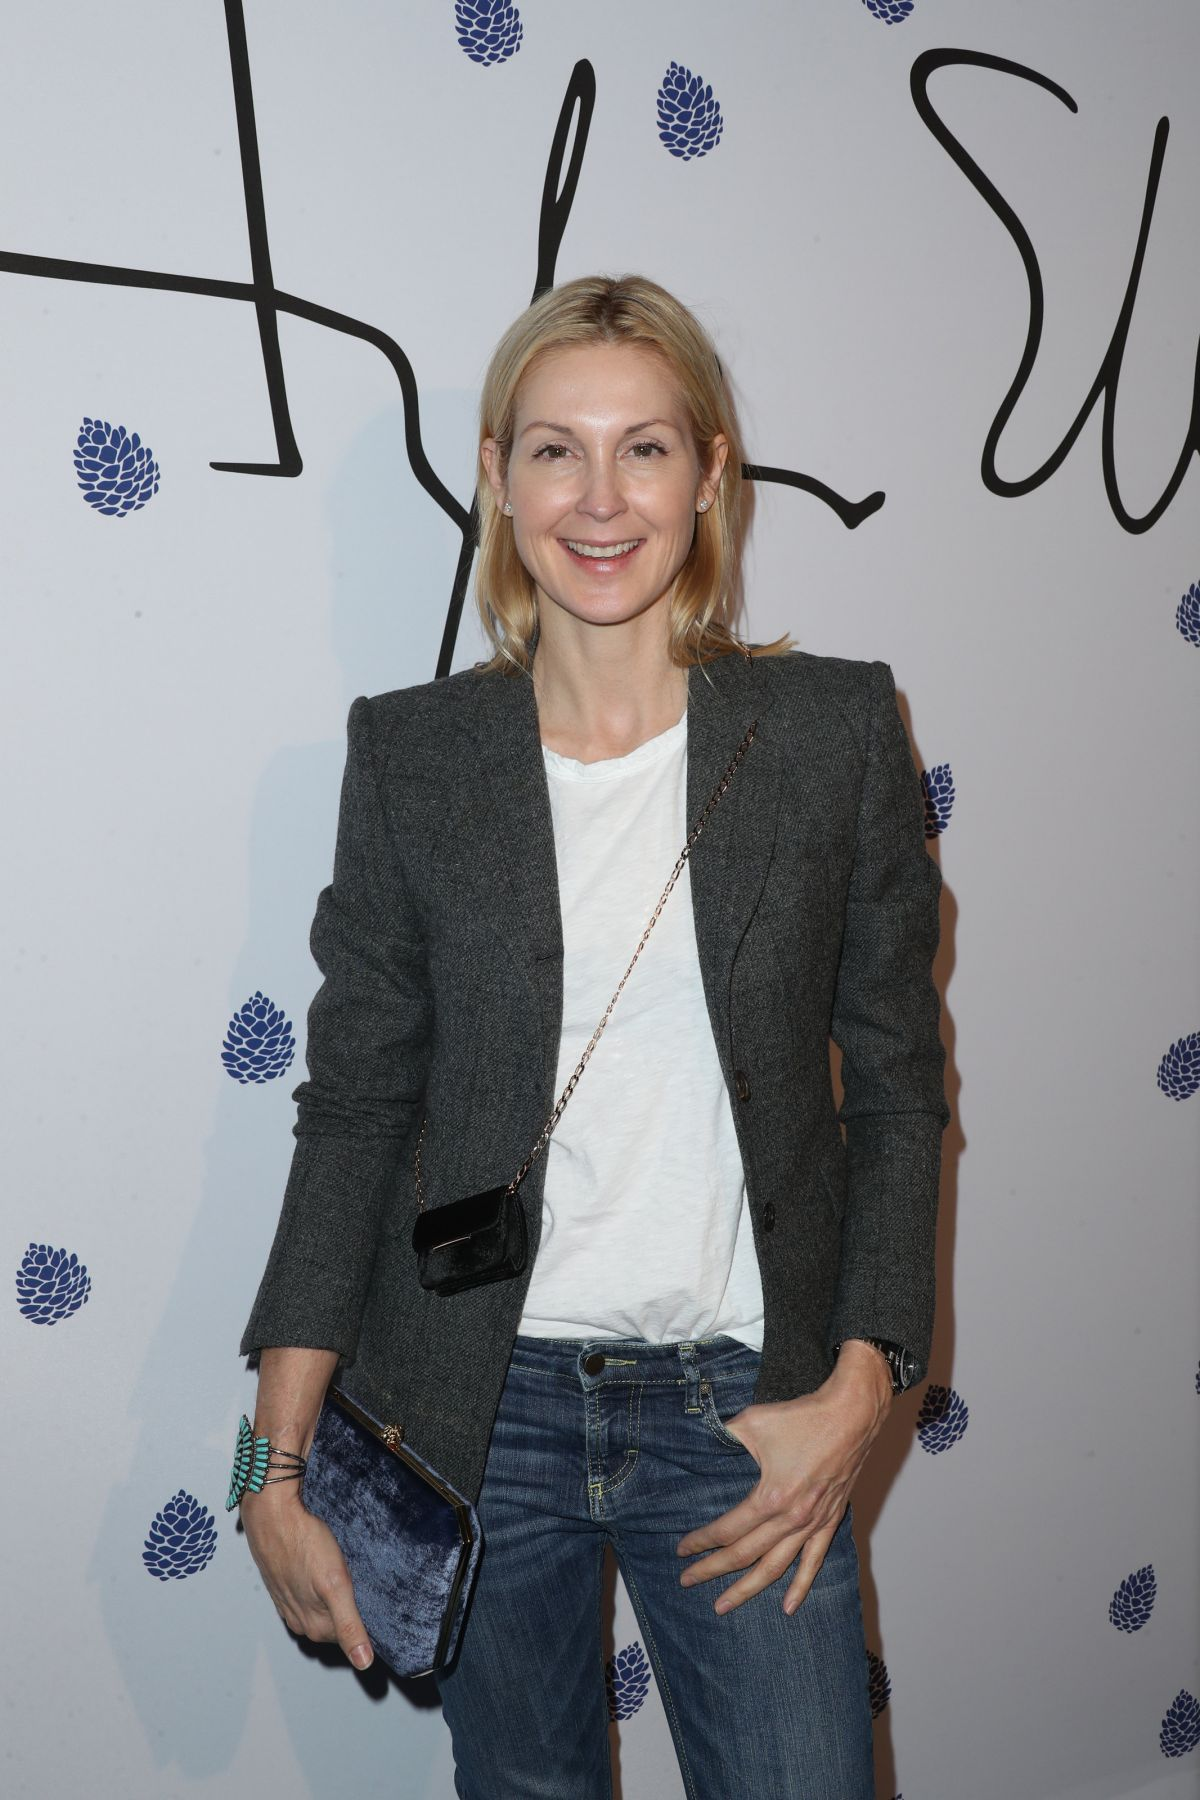 KELLY RUTHERFORD at Tyler Ellis' 5th Anniversary Celebration in Los Angeles 01/31/2017